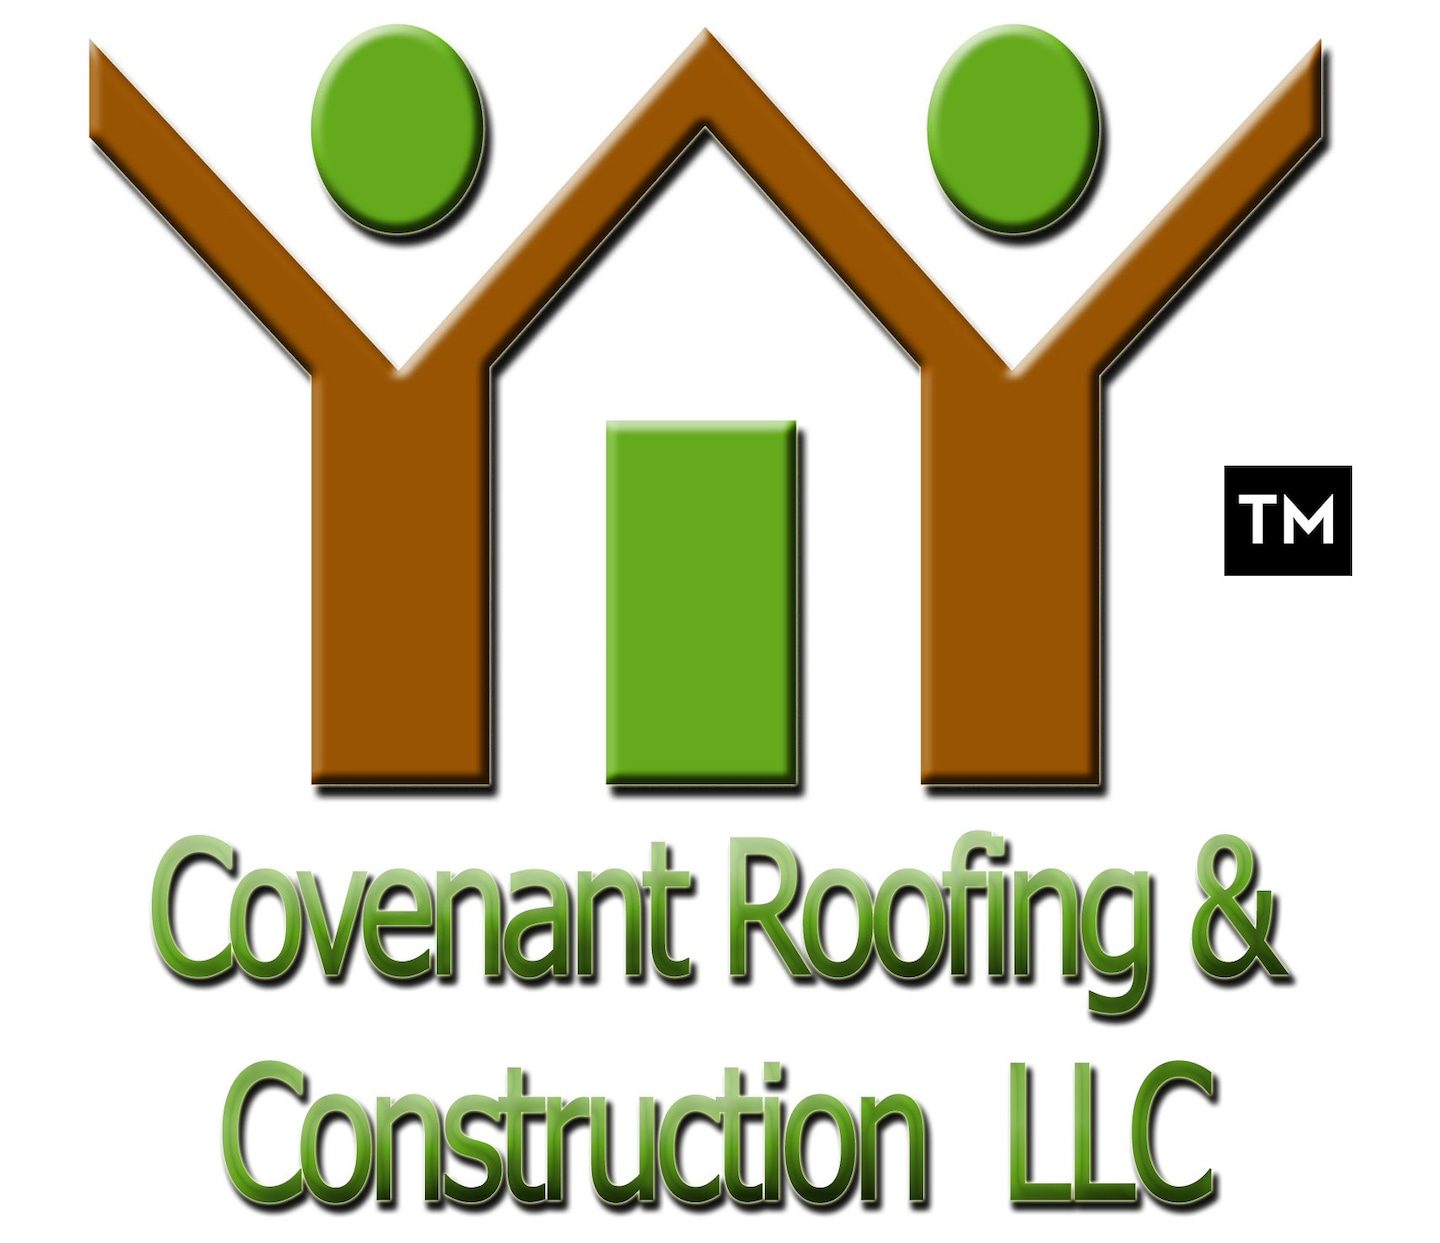 Covenant Roofing and Construction, LLC